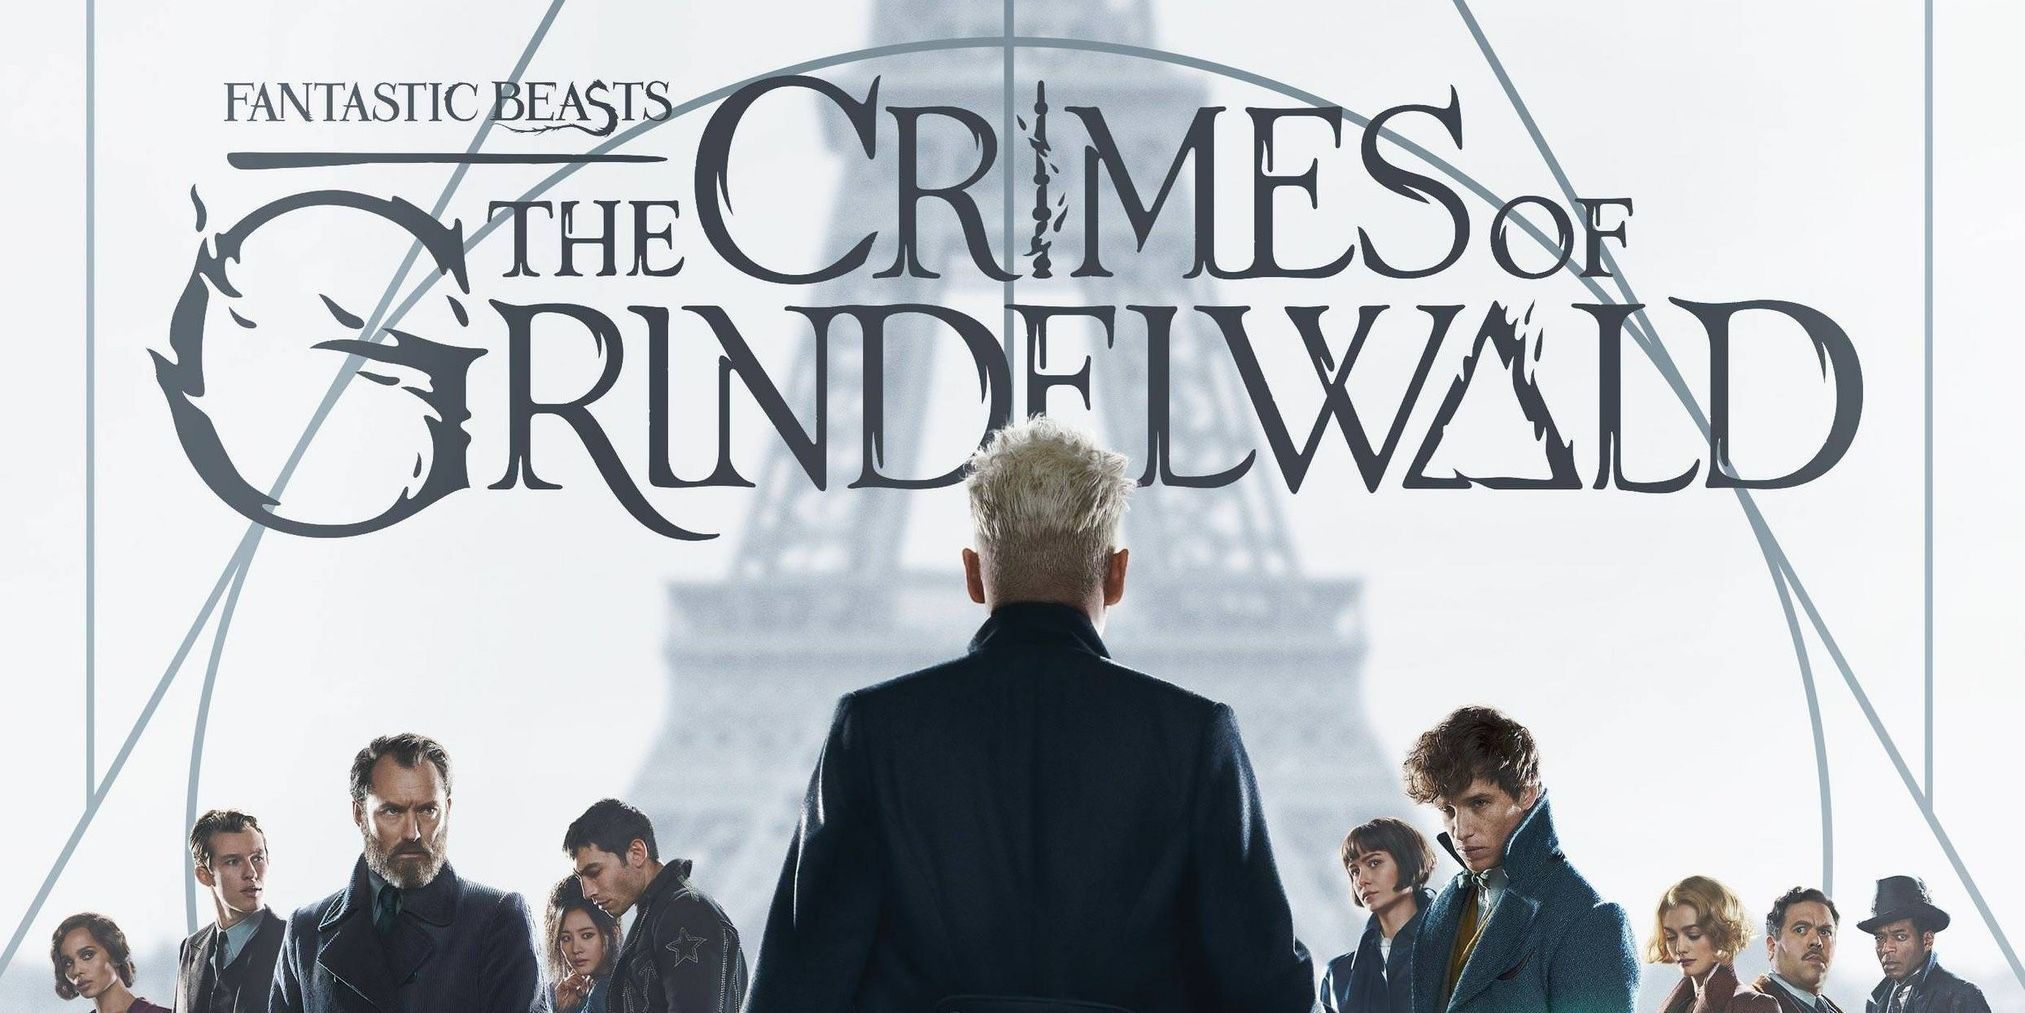 Fantastic Beasts 2 Early Reactions Praise Visuals & Action